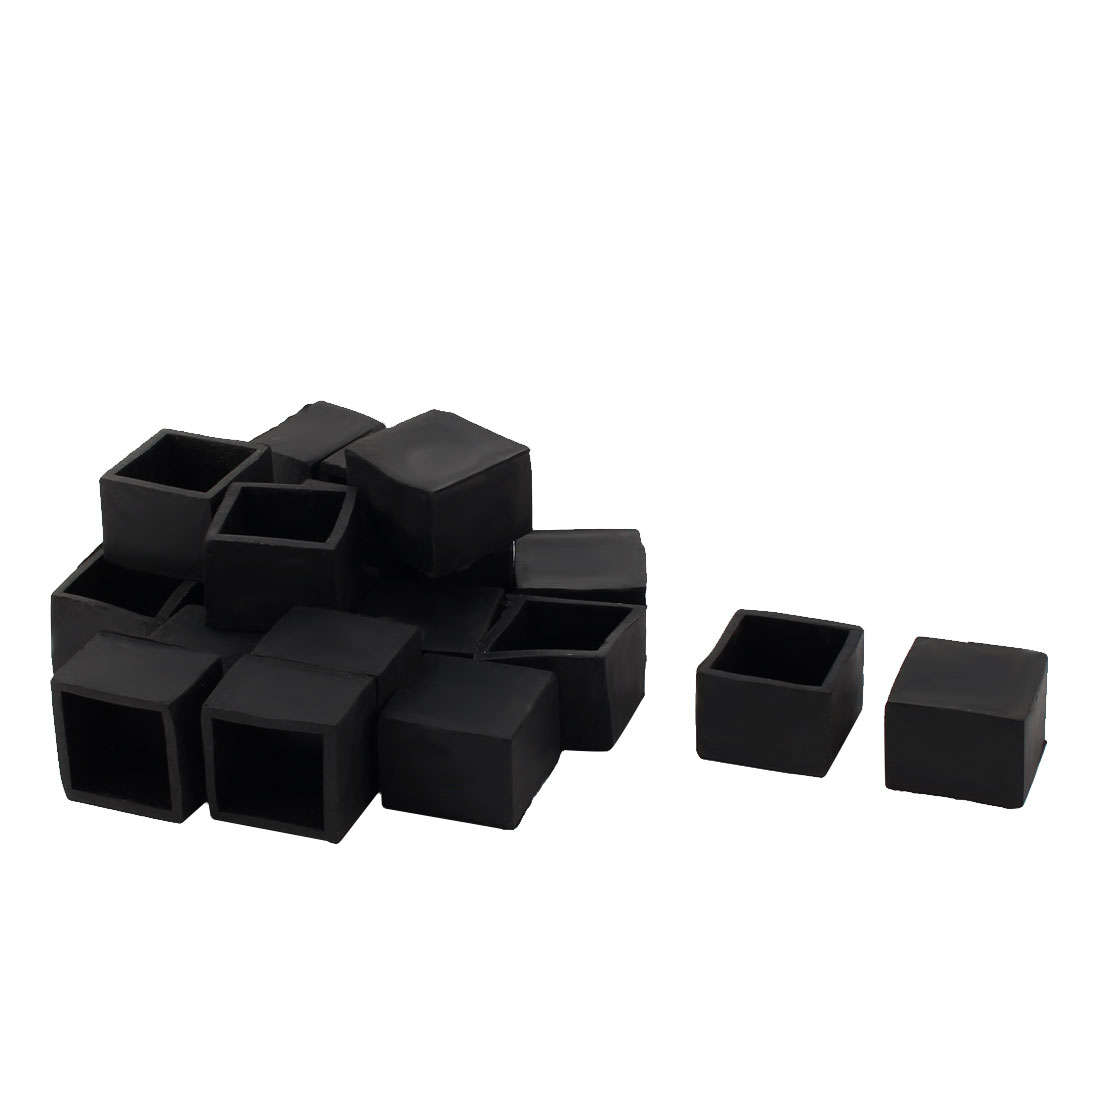 28mm x 28mm Square Tube Insert Table Desk Leg Foot Rubber Caps Cover Black 20pcs